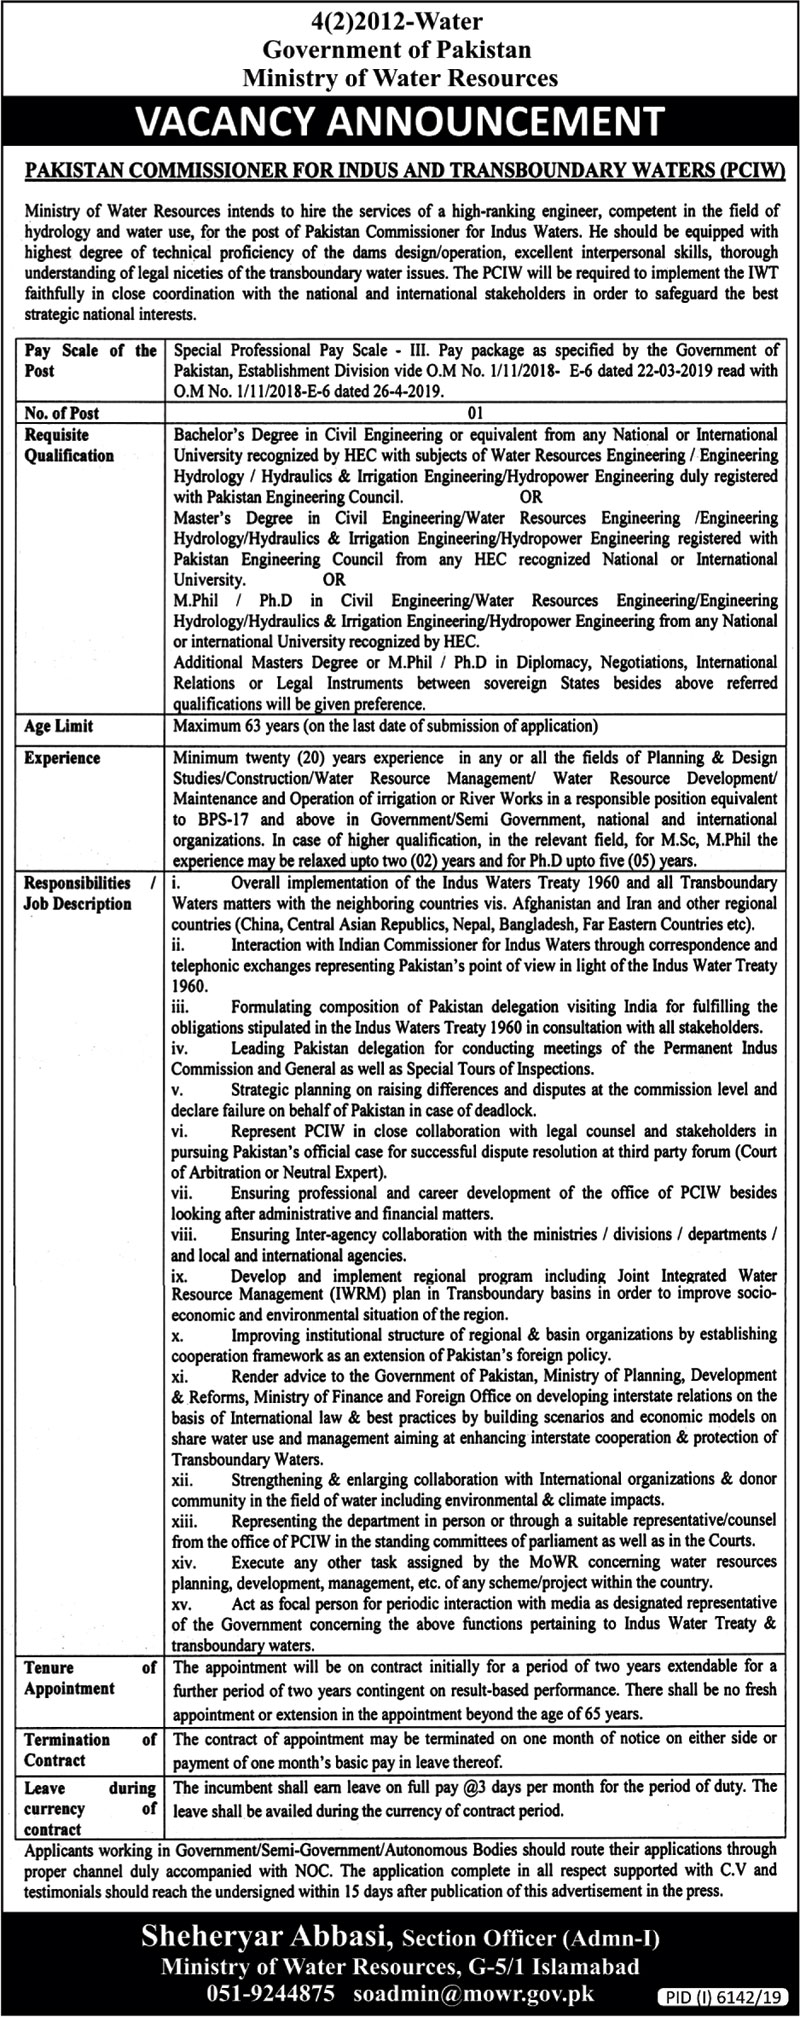 Ministry Of Water Resources jobs newspaper ad for Paistan Commissioner For Indus Water in Islamabad